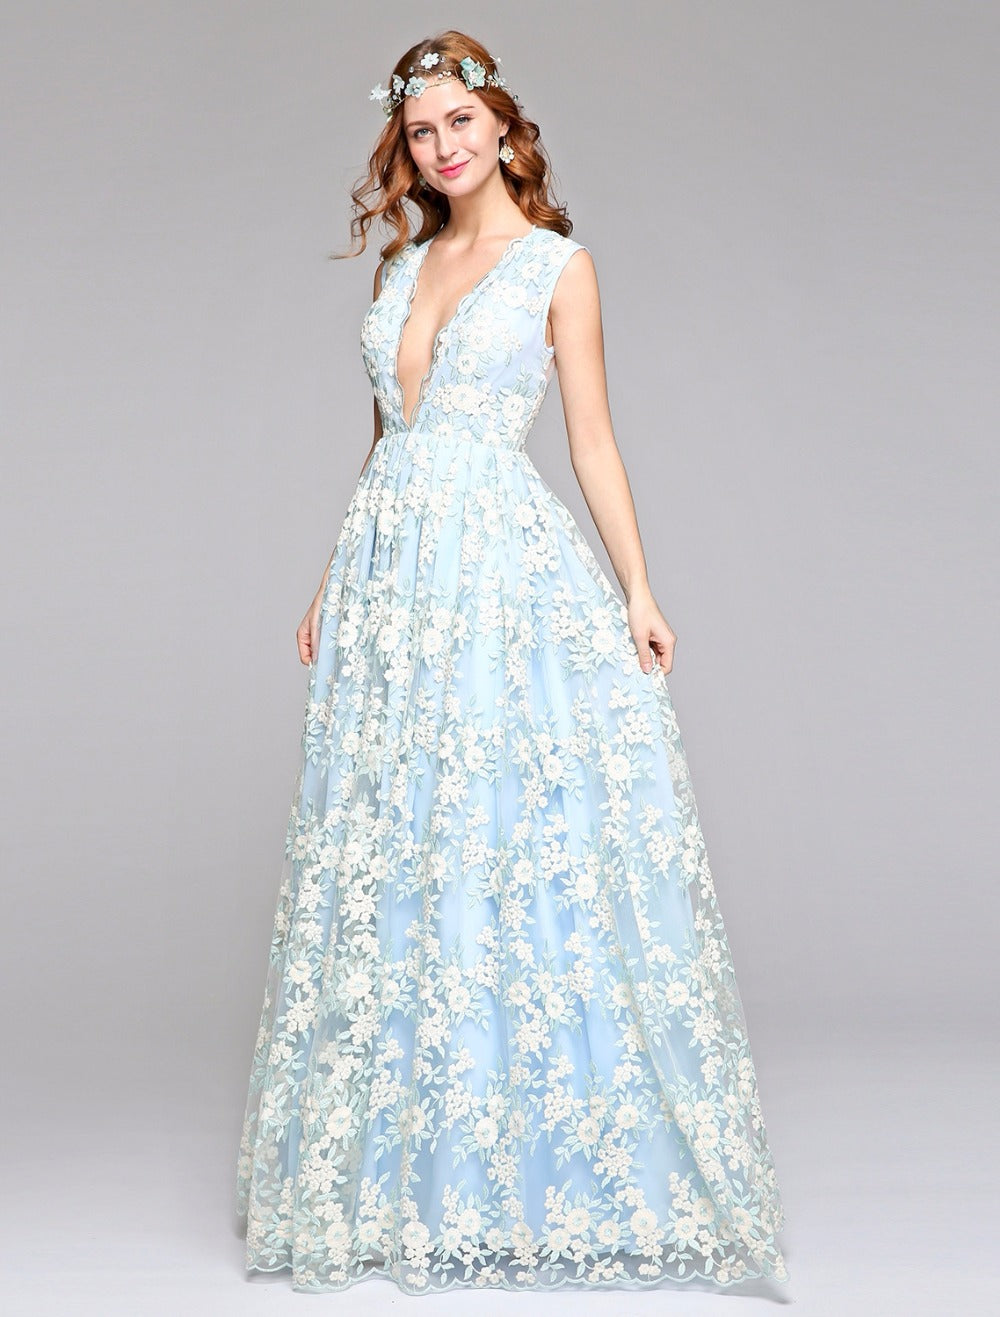 Millennial Blue Wedding Gown with Sheer Illusion